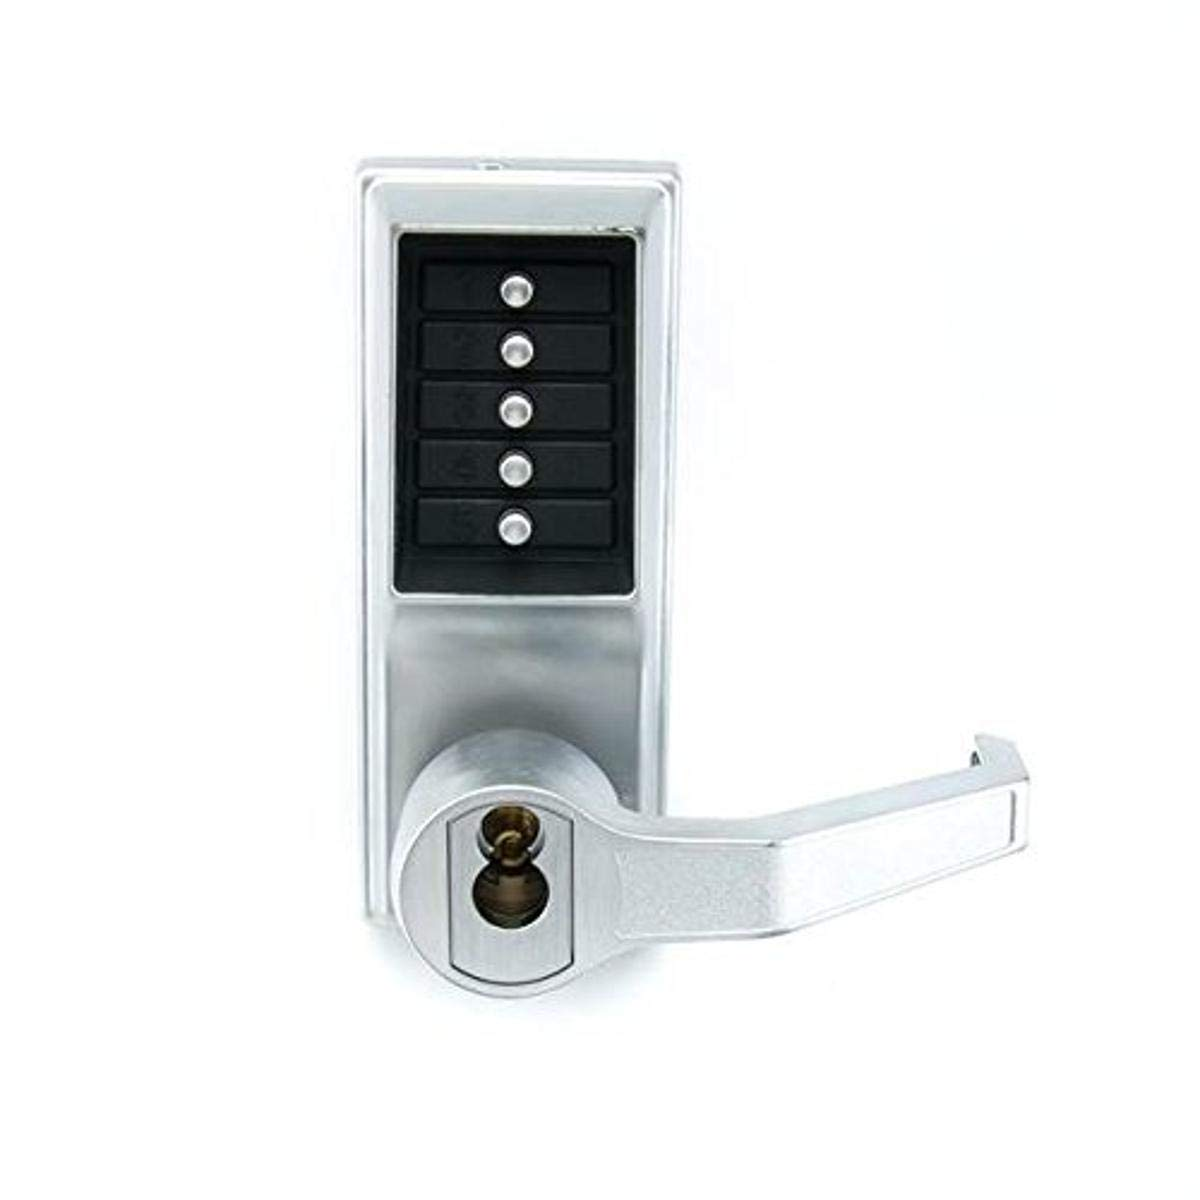 Kaba Simplex LP1000 Series Metal Mechanical Pushbutton Exit Trim Lock with Lever, Combination Entry and Key Override, R/C Schlage, Core Not Included, Satin Chrome Finish, Right Hand